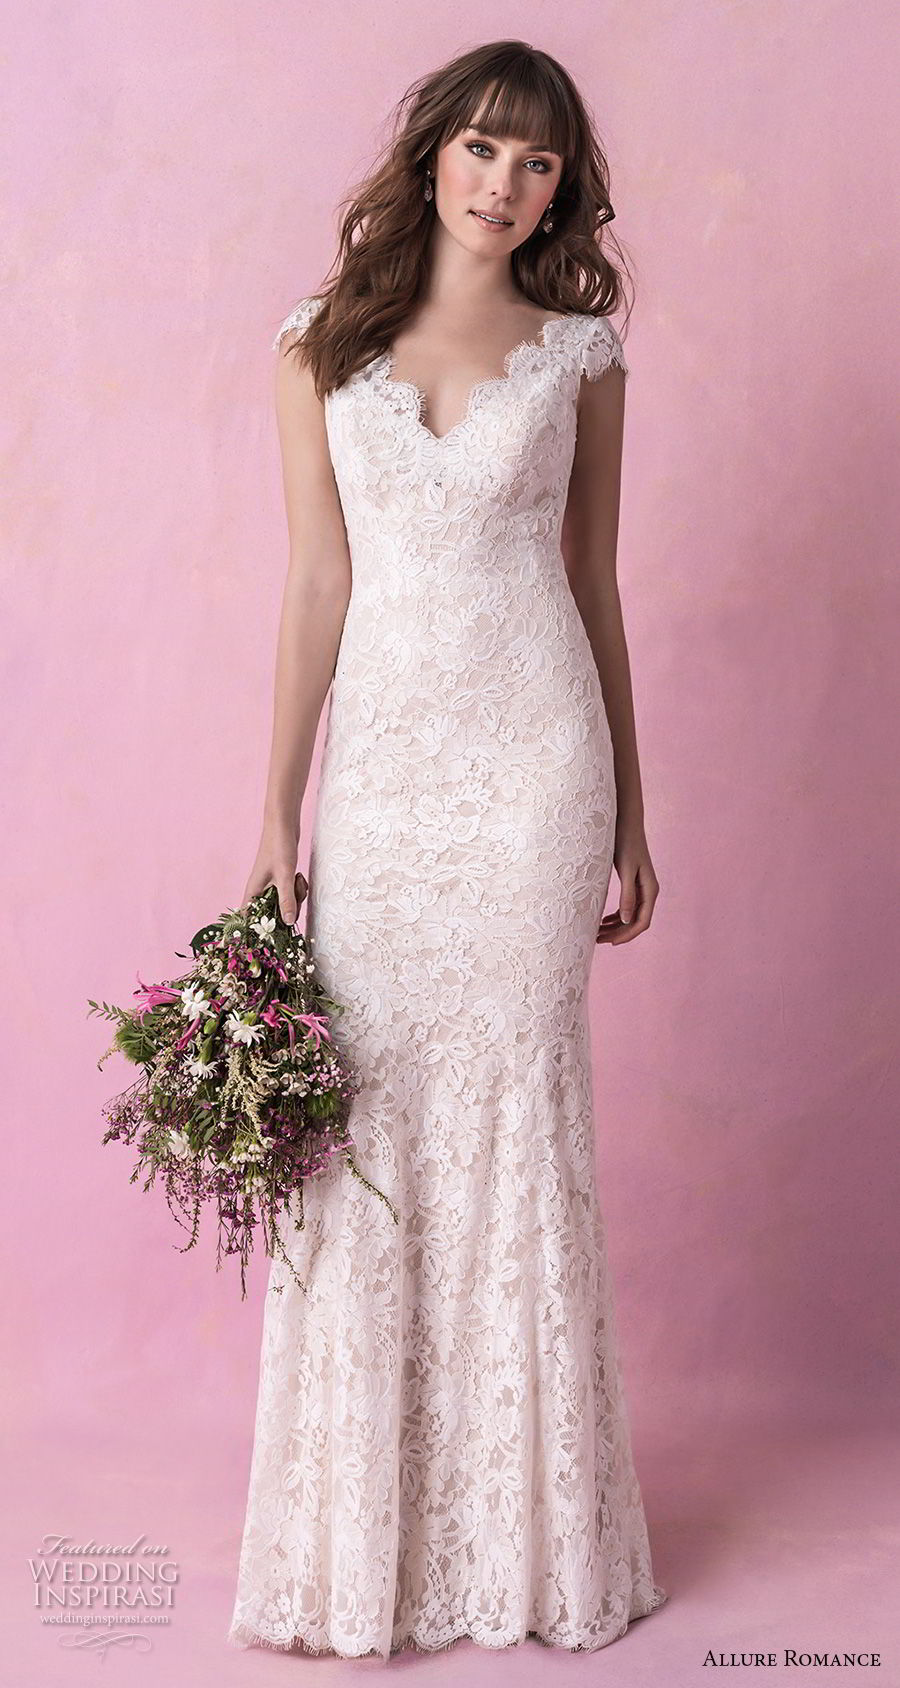 allure romance fall 2018 bridal cap sleeves v neck full embellishment elegant sheath wedding dress v back chapel train (13) mv